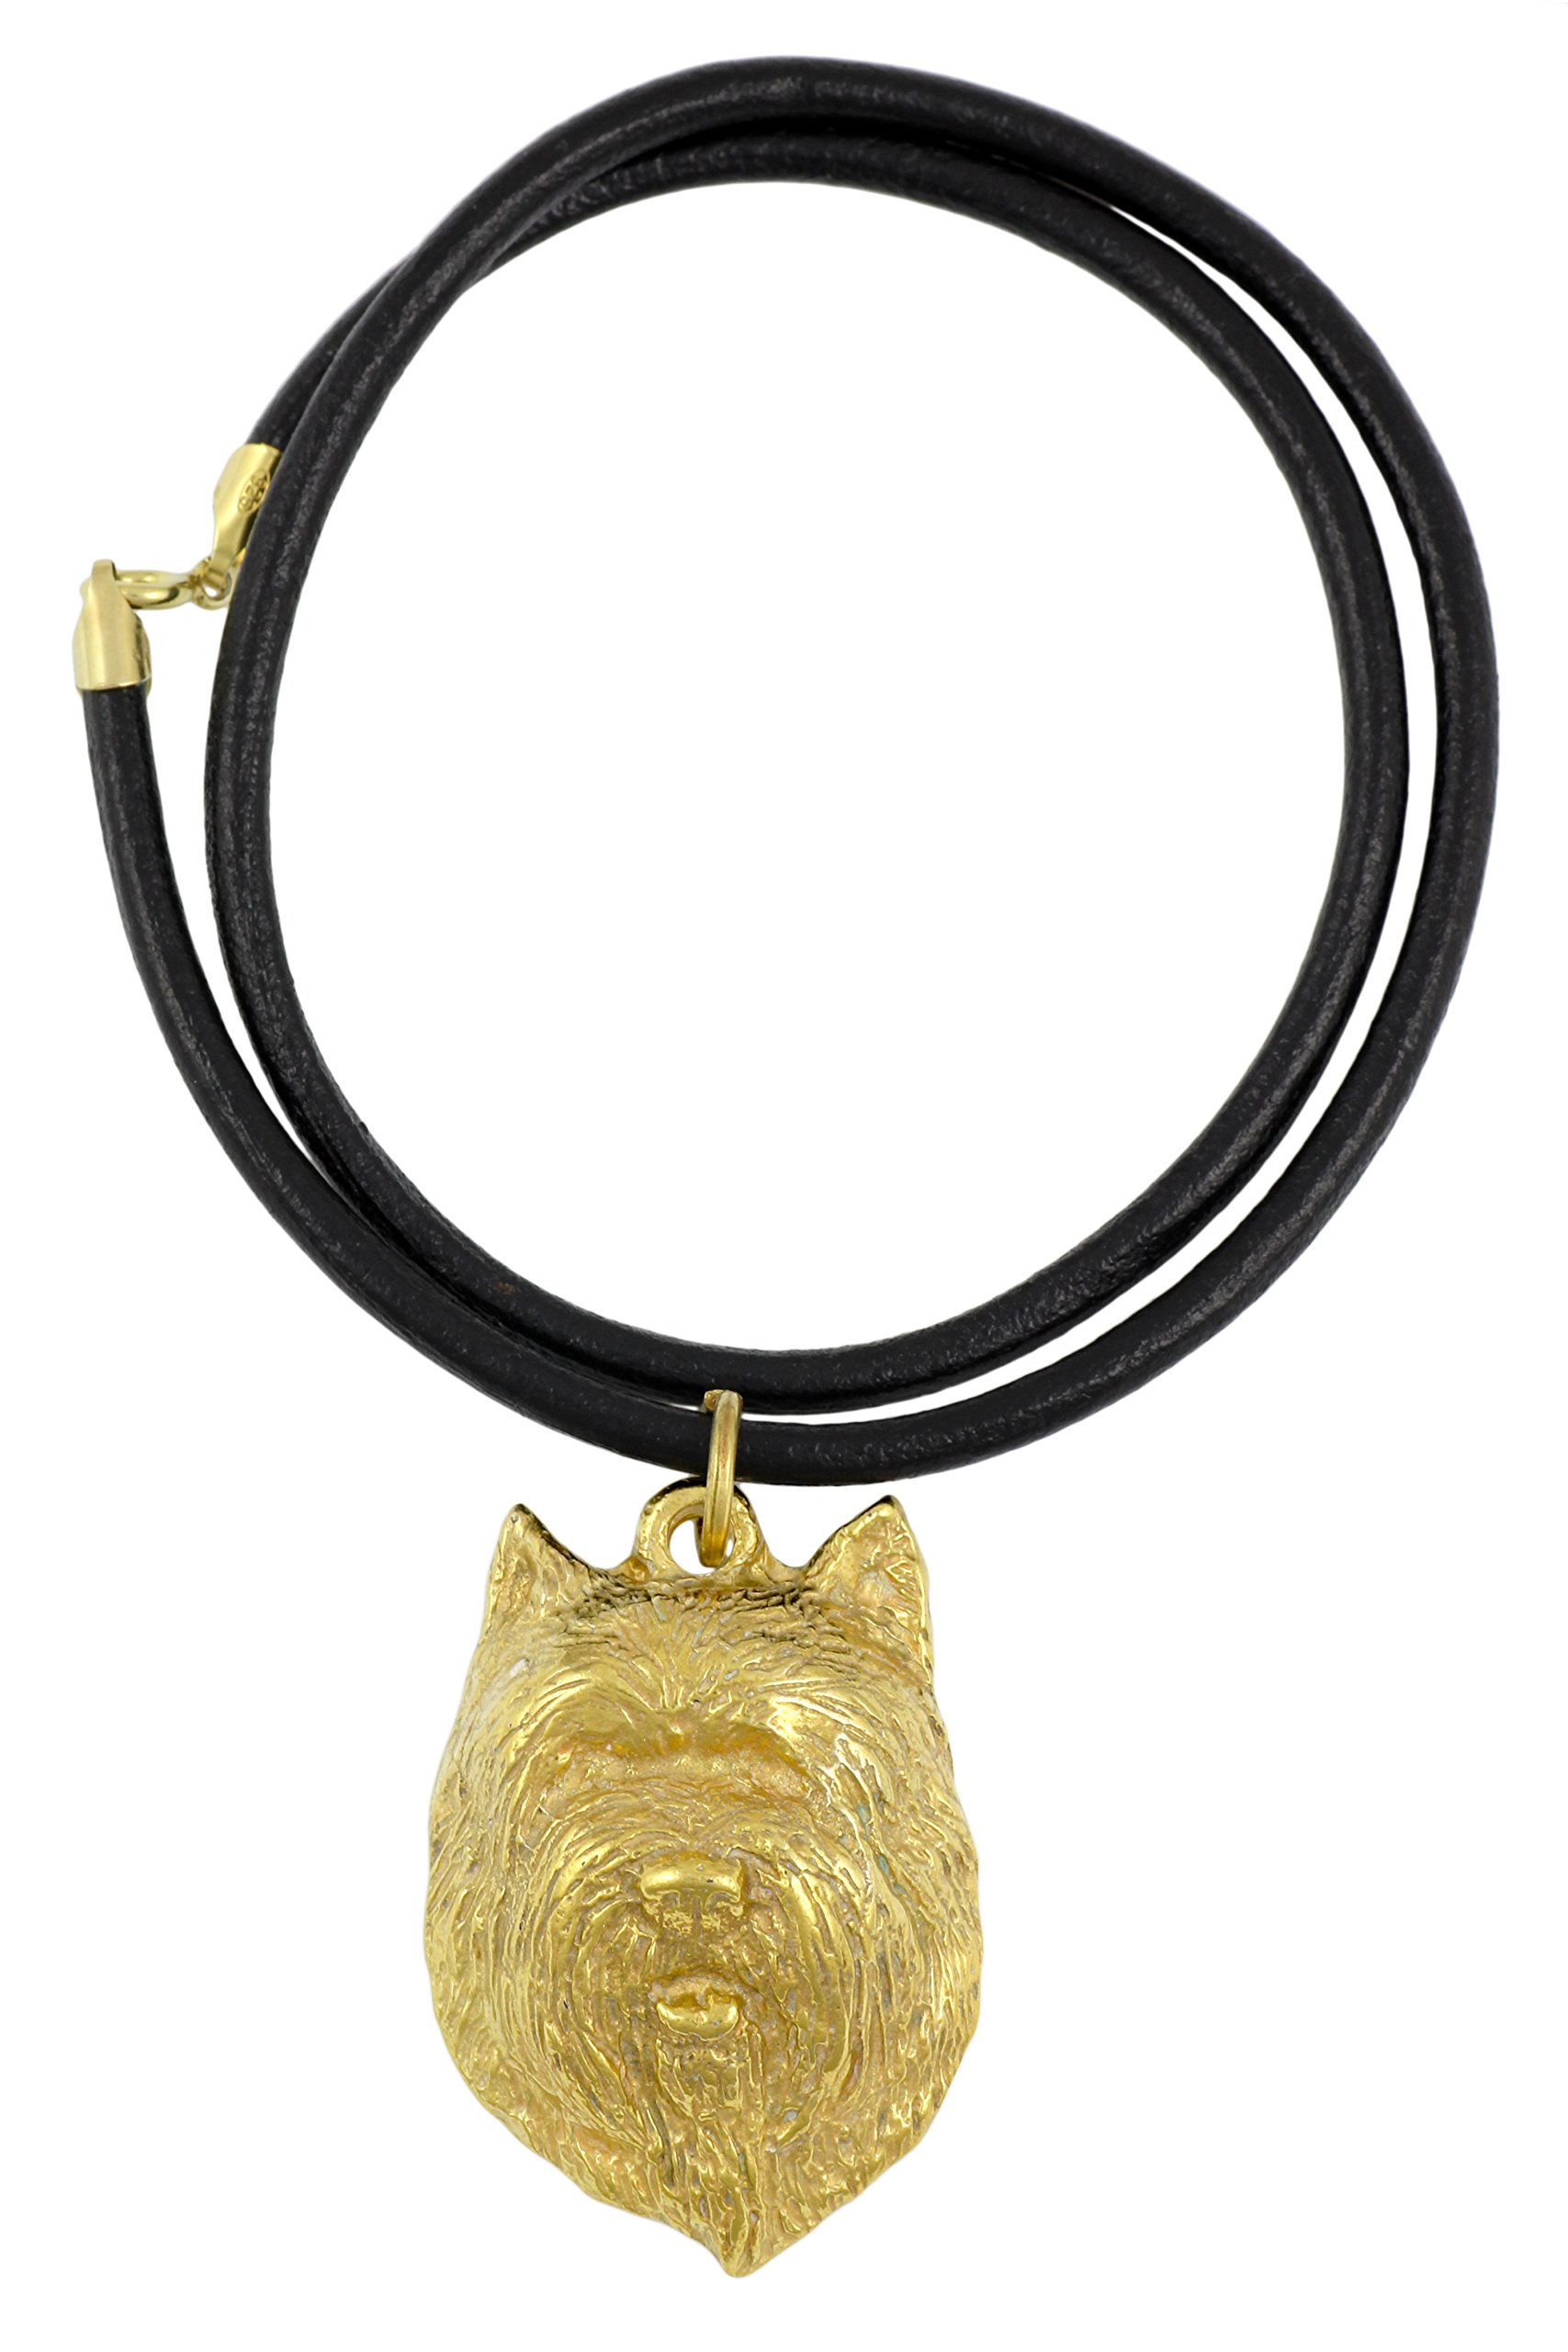 Cairn Terrier (Muzzle), Millesimal Fineness 999, Dog Necklaces, Limited Edition, Artdog